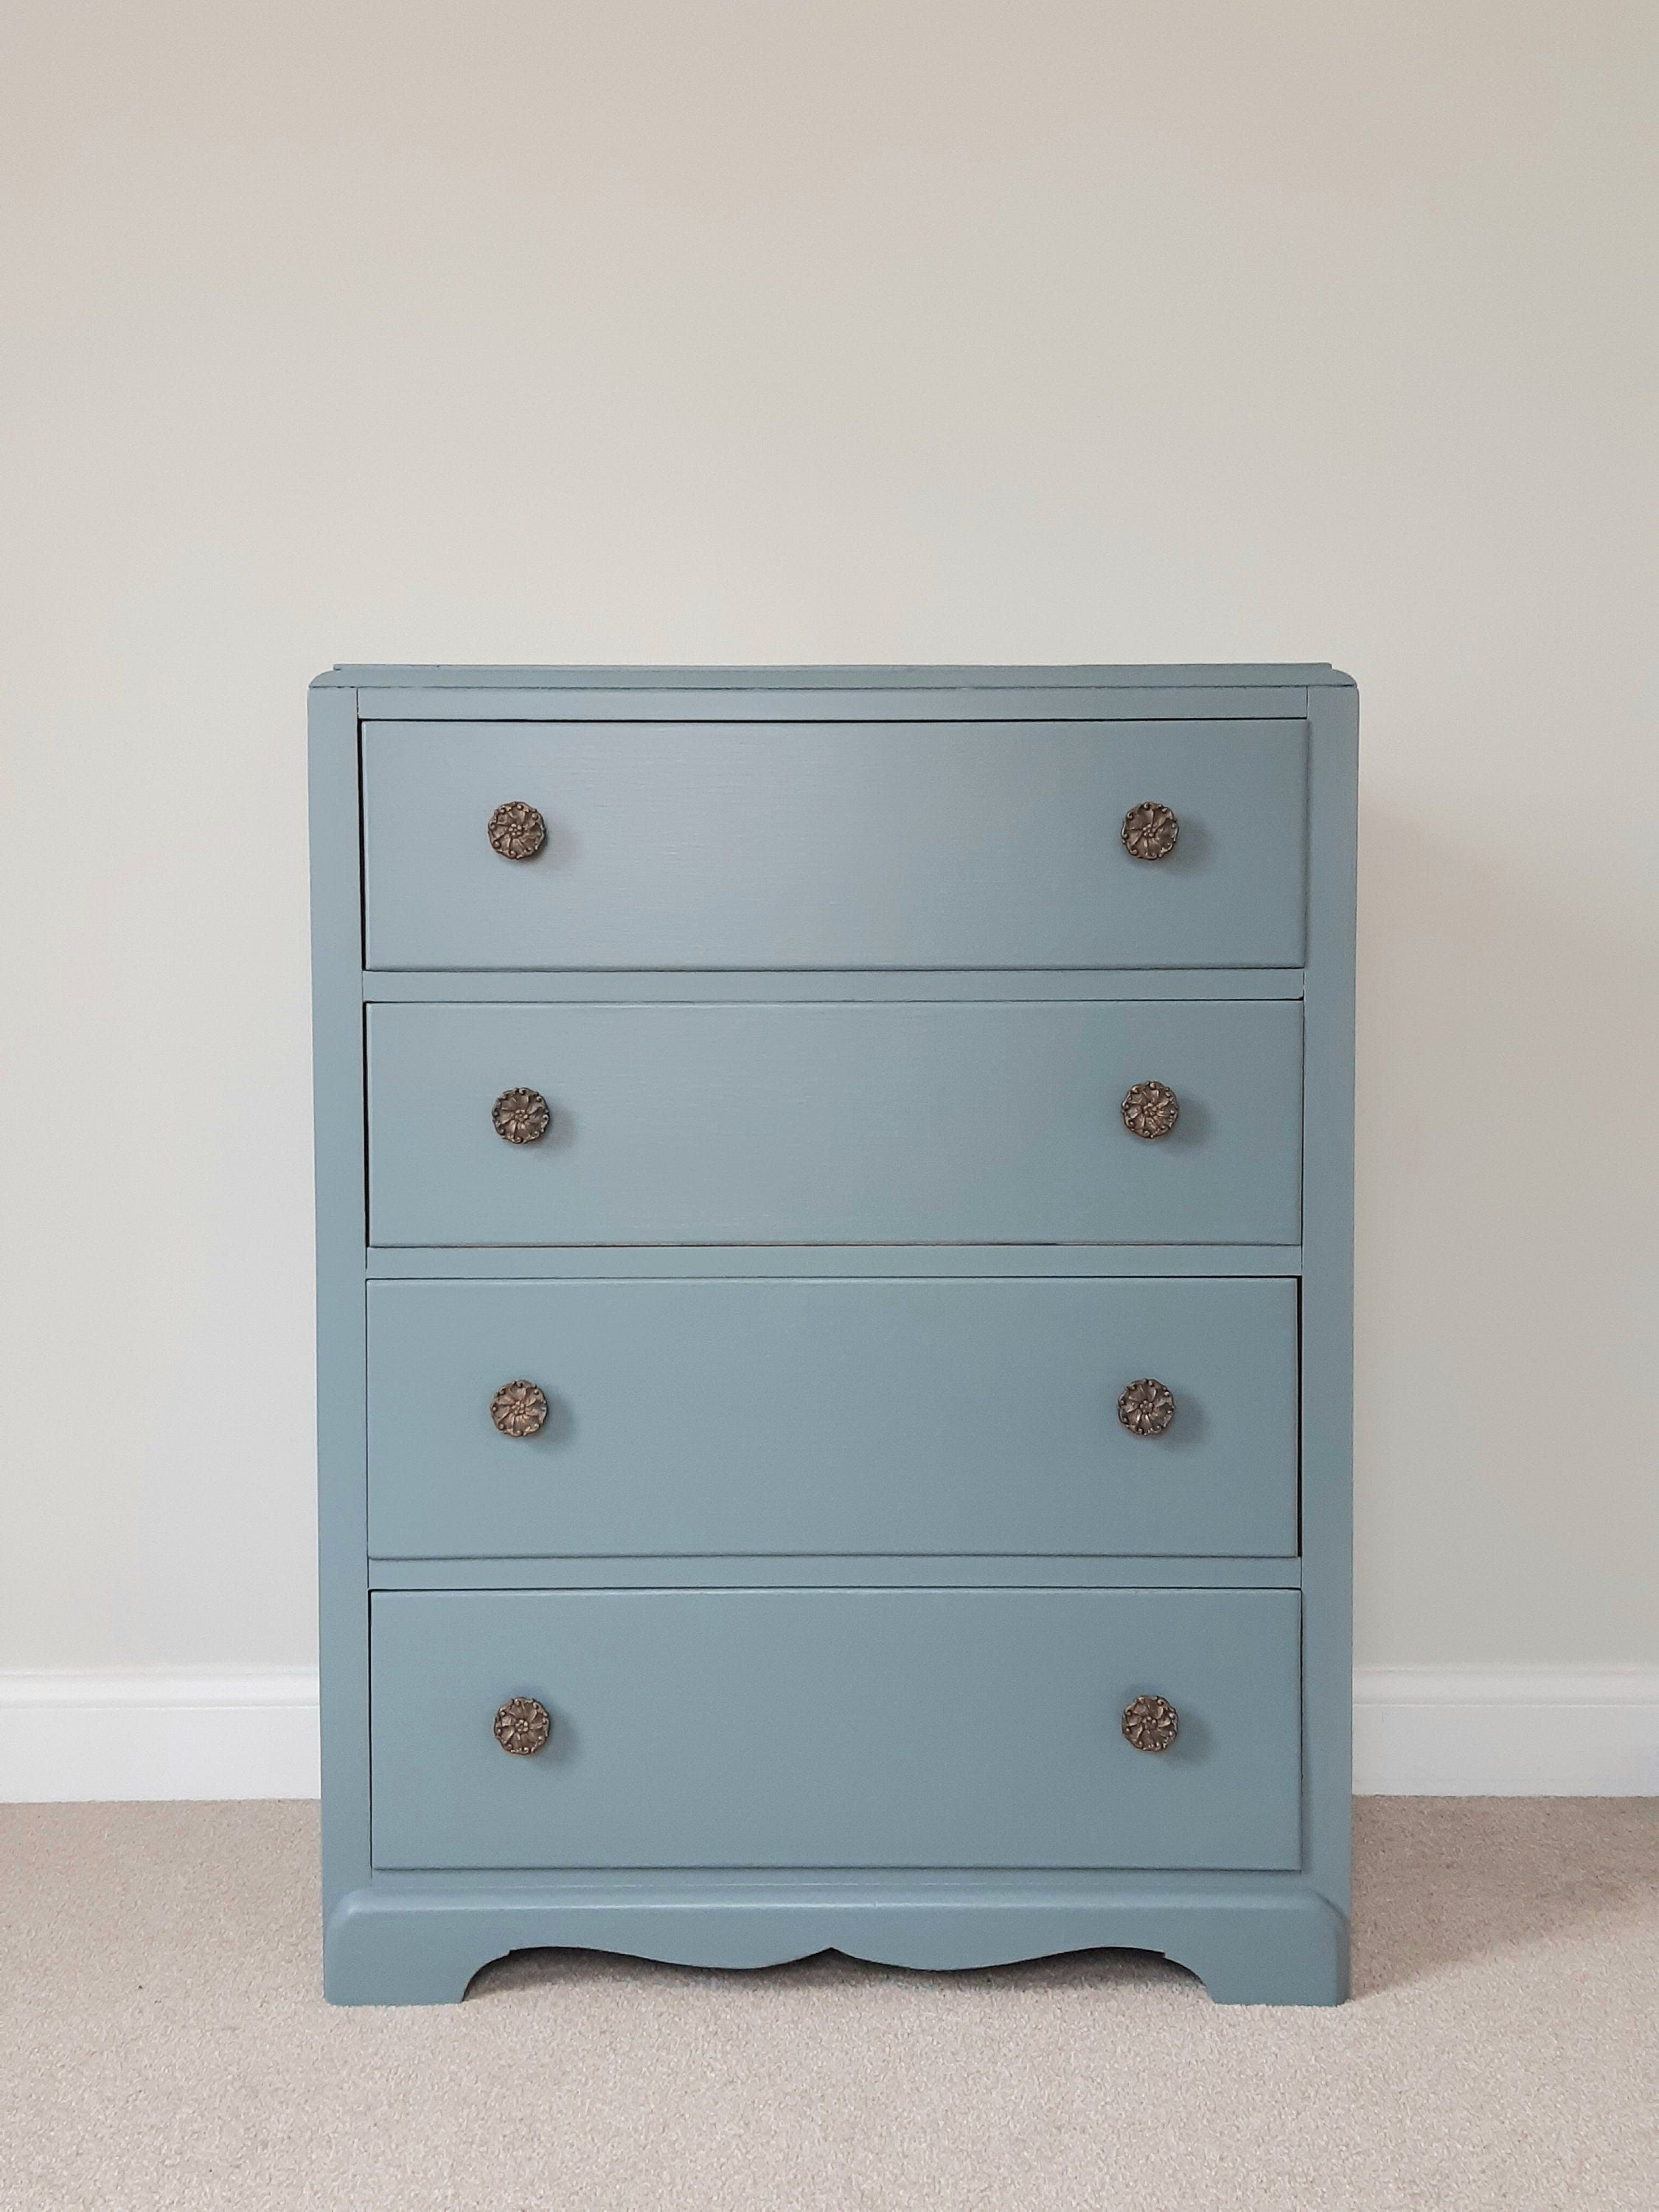 Stunning Vintage Chest Of Drawers Painted In Farrow Ball De Nimes Vintage Chest Of Drawers Vintage Chest Blue Cupboards